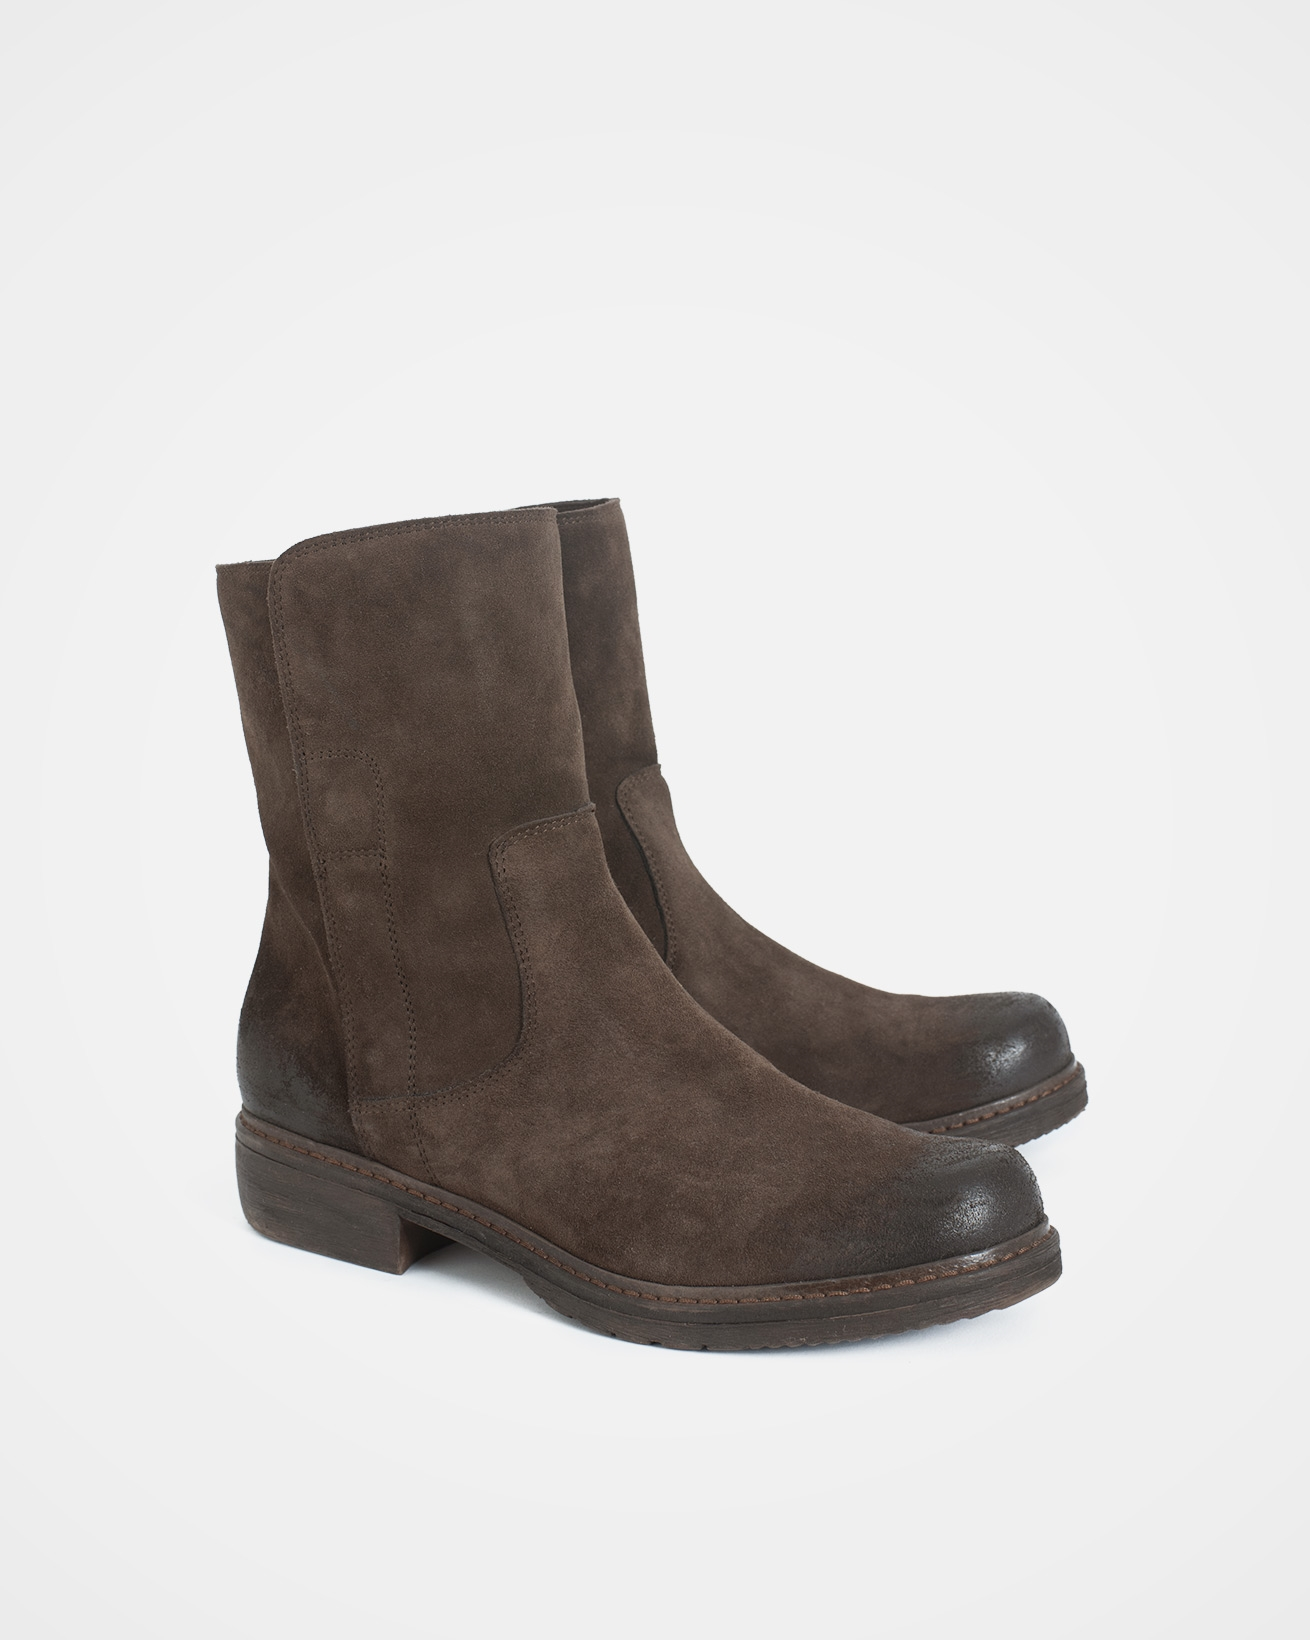 Essential leather ankle boots - Size 39 - Chocolate - 1735